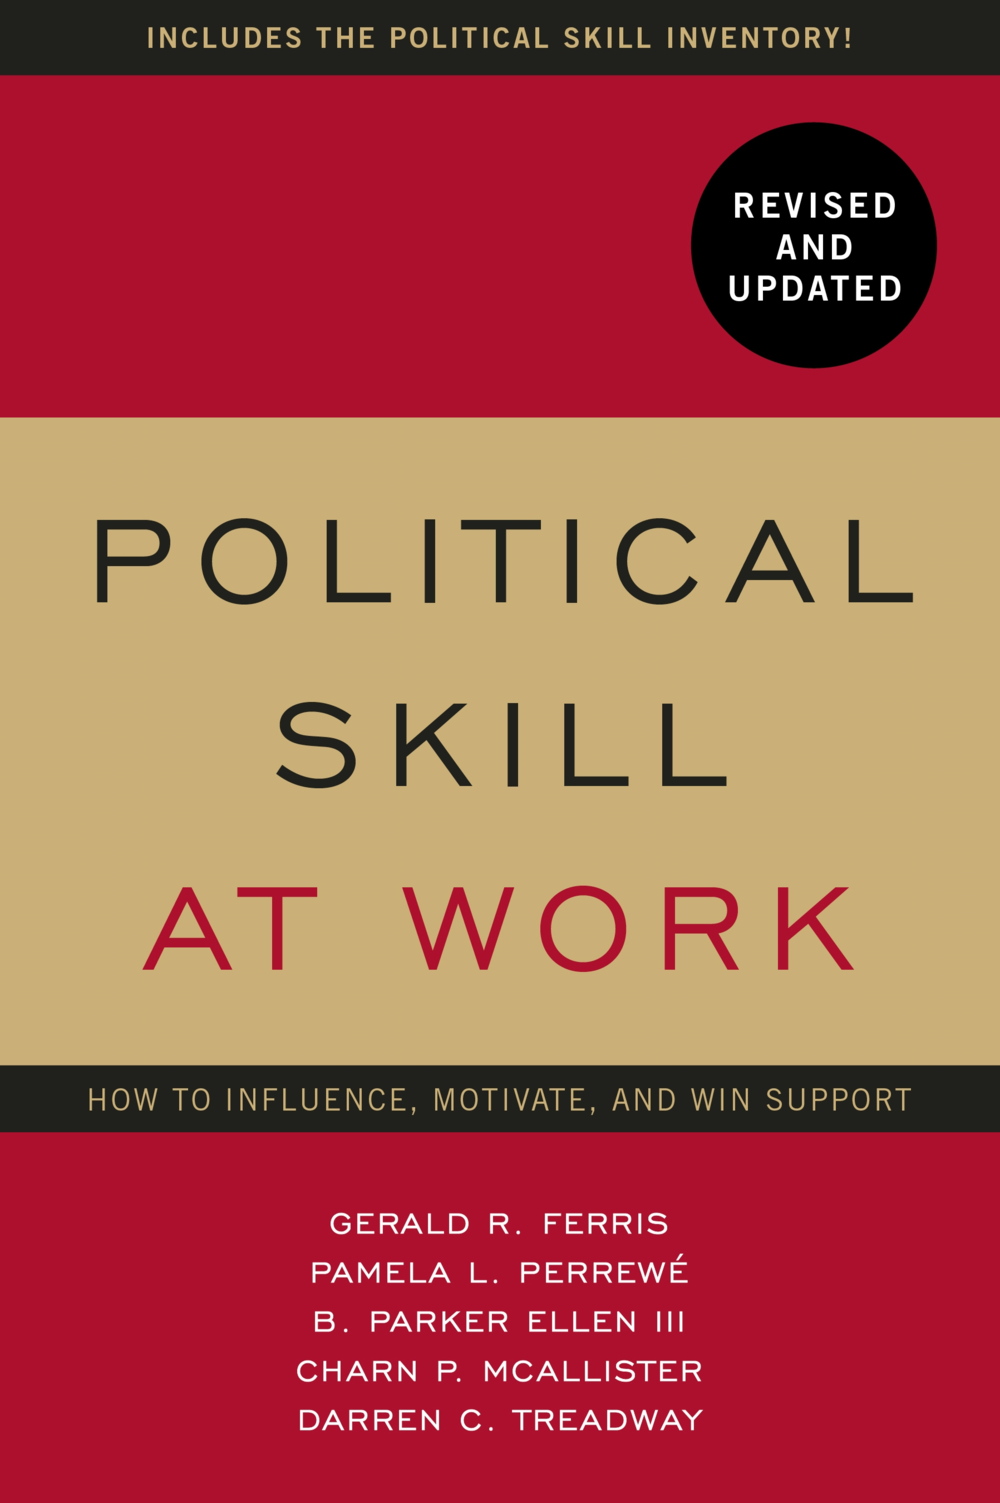 Political Skill at Work: How to Influence, Motivate, and Win Support